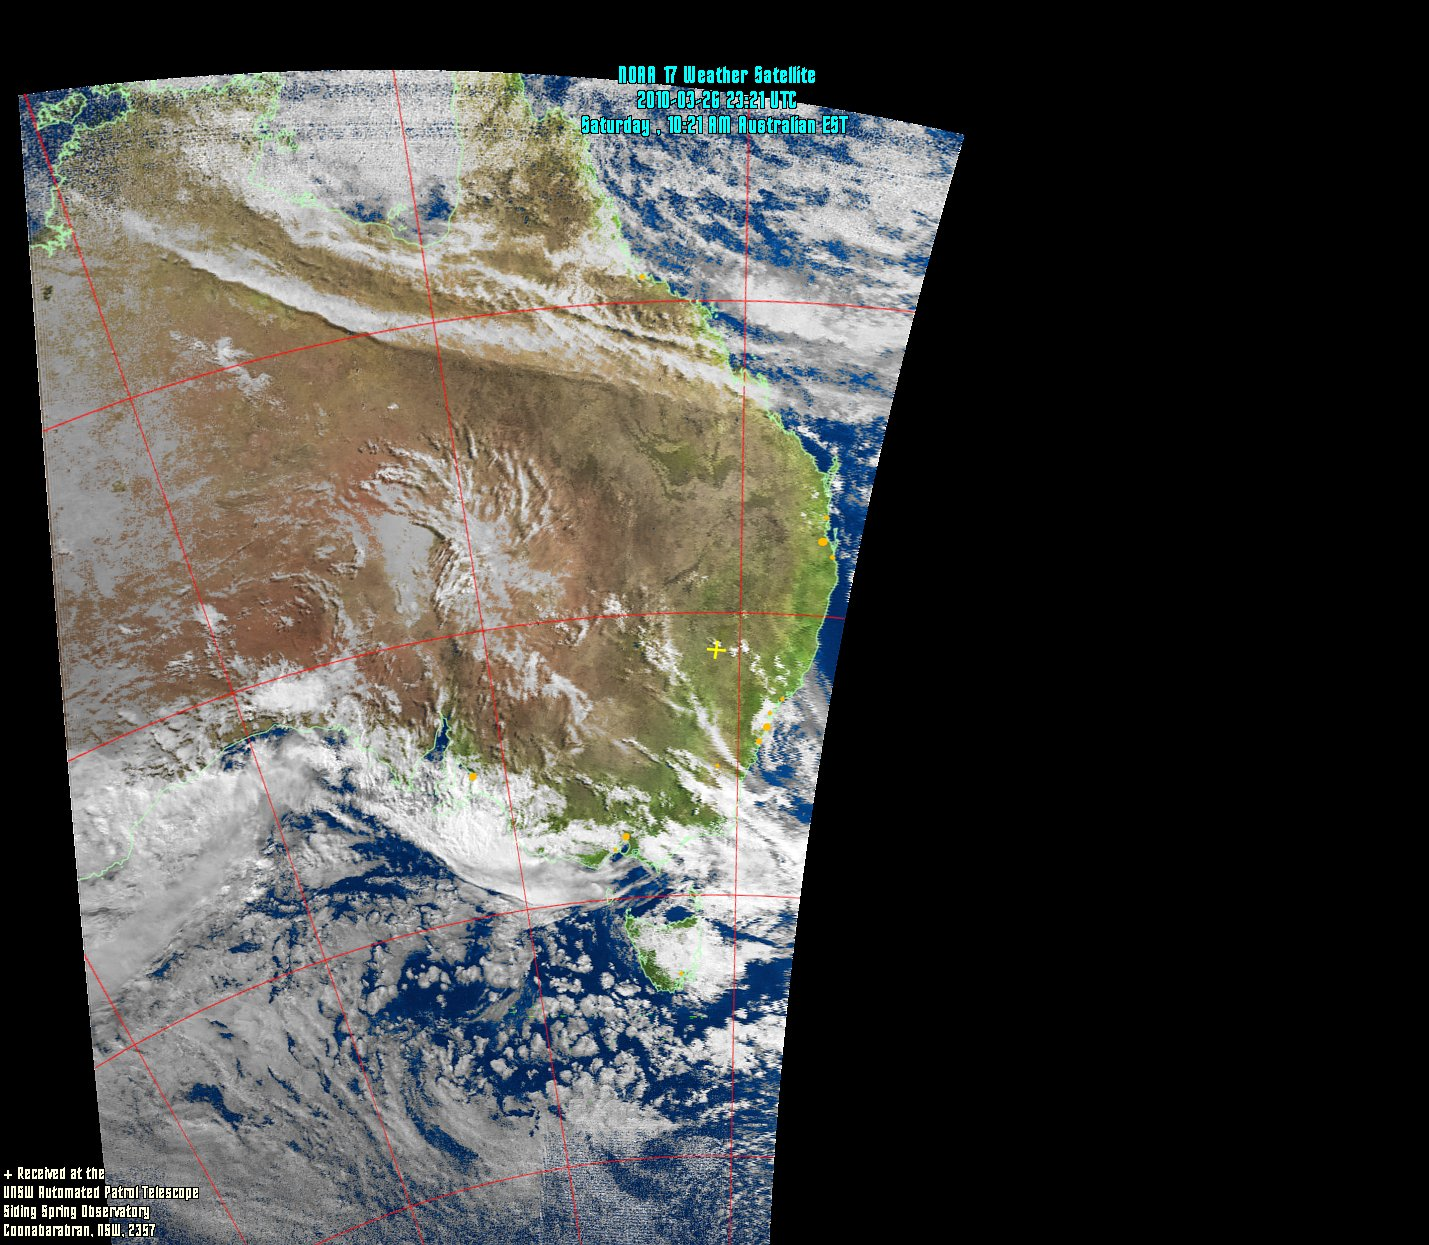 NOAA Satellite Images - Live weather satellite images